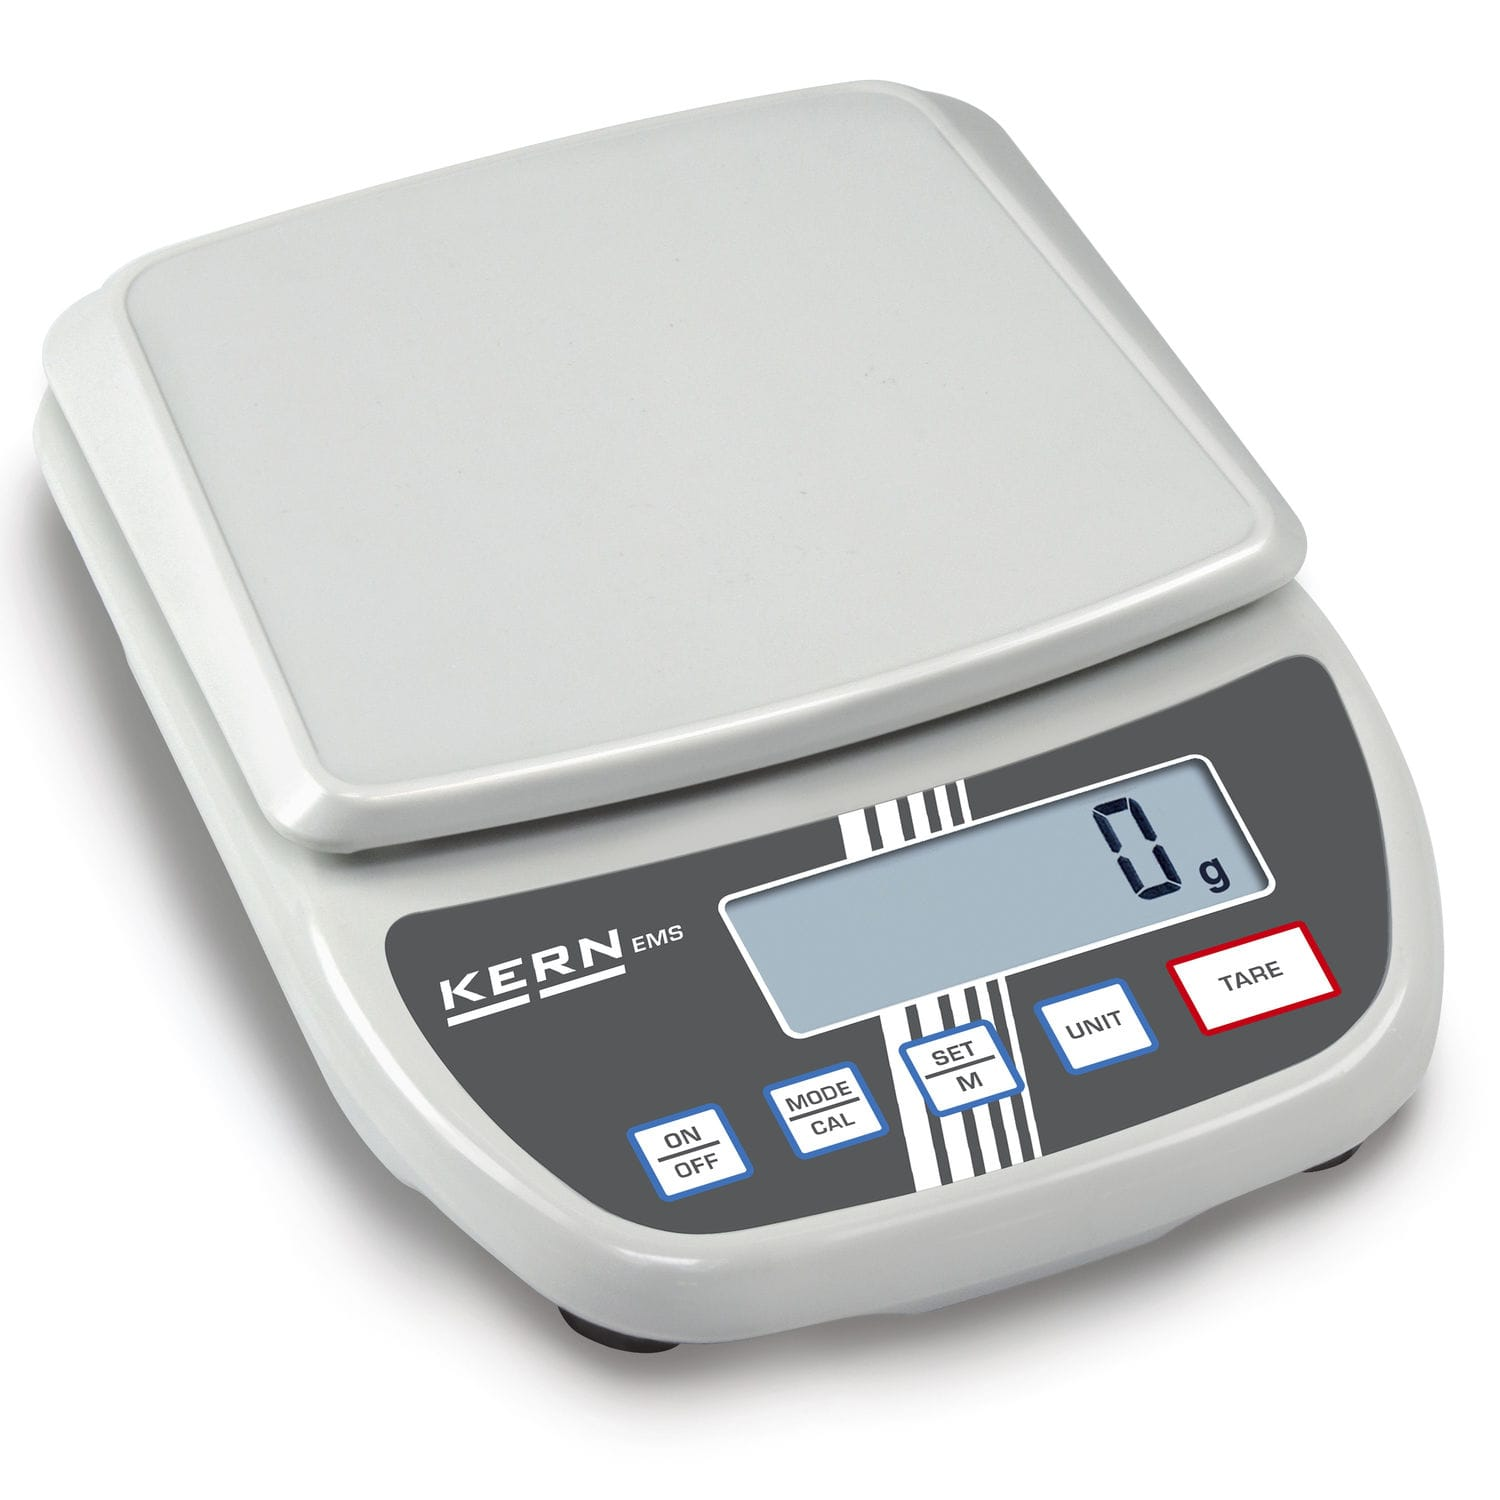 Precision Scale Precision Balance Counting With Lcd Display With External